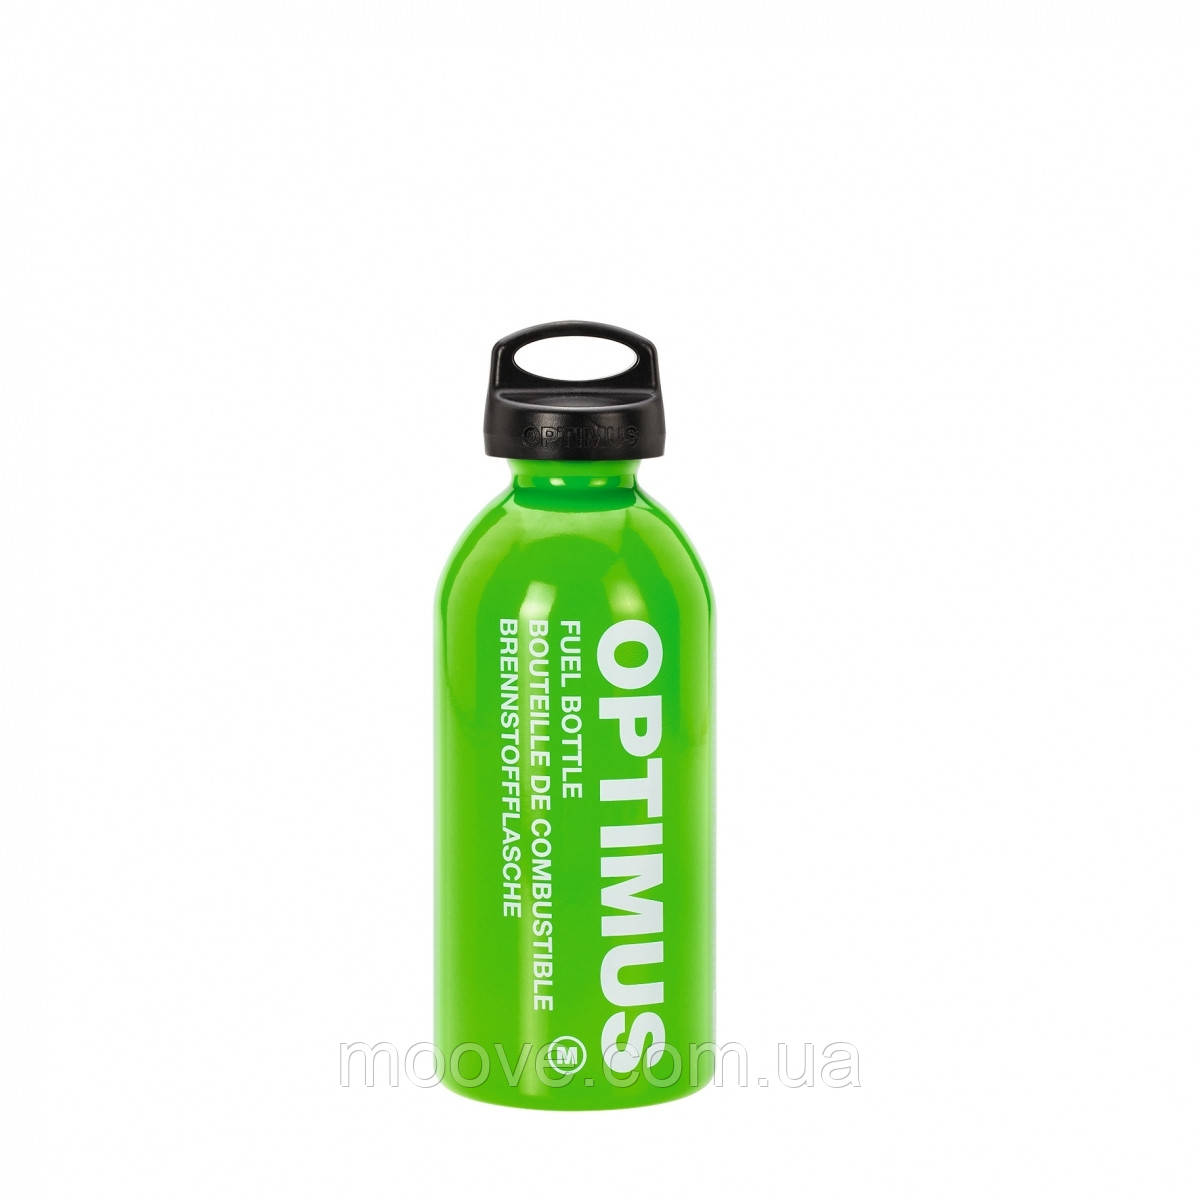 Optimus Fuel Bottle M Child Safe 0.6 л